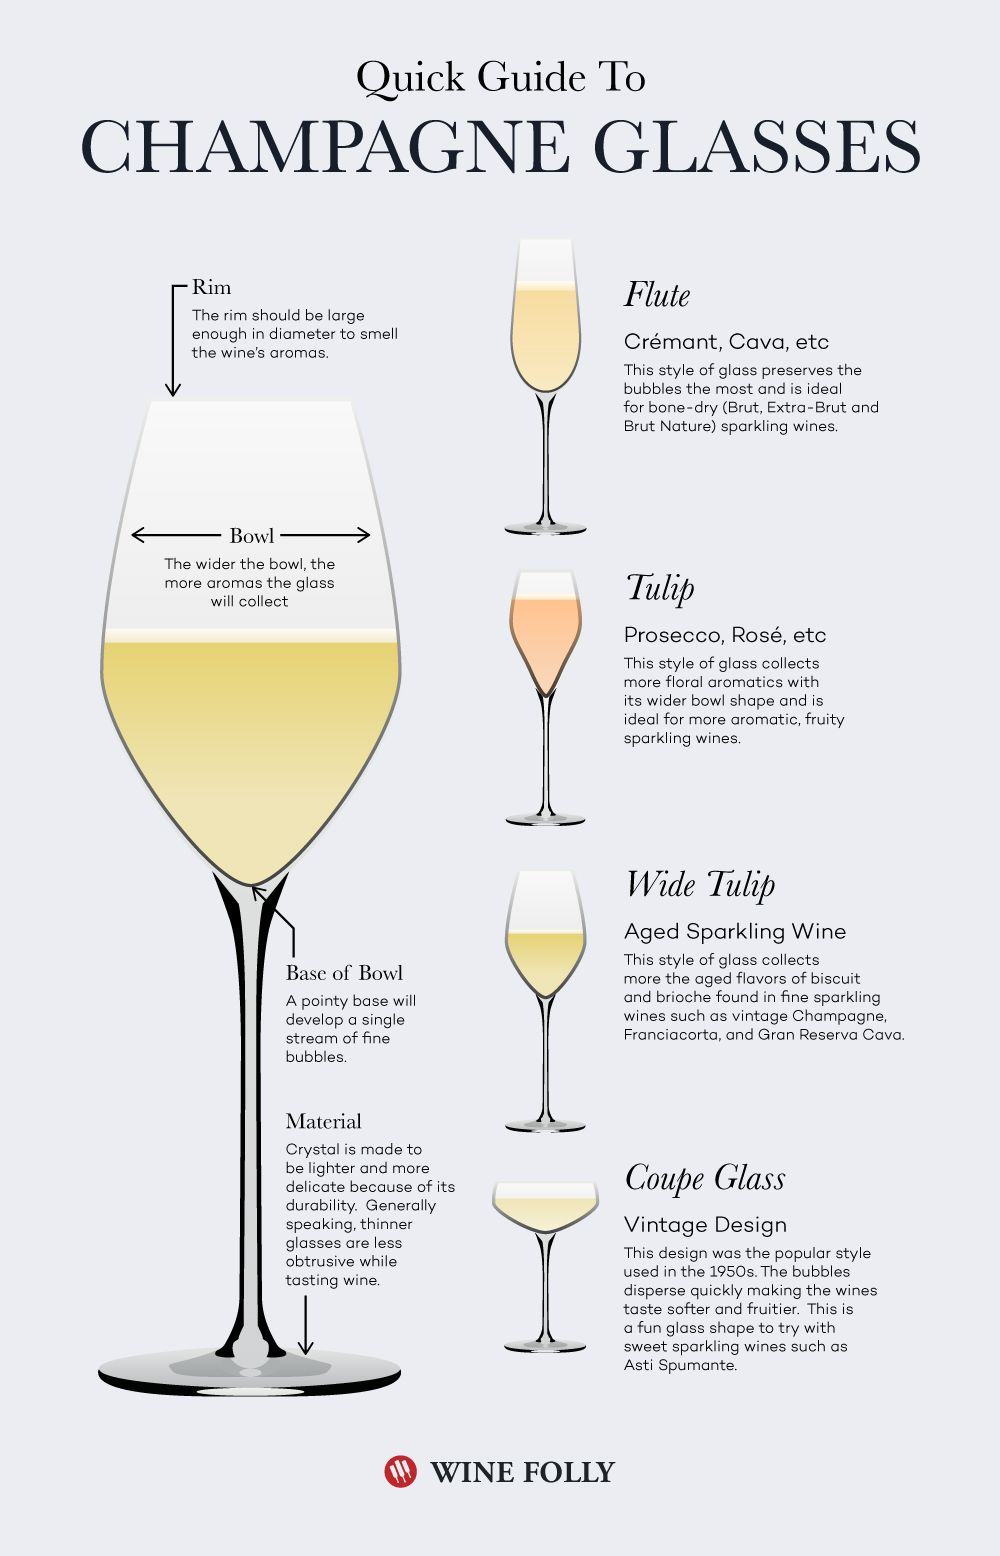 medium resolution of guide to champagne glasses and flutes there are a few styles of sparkling glassware and believe it or not they do make a difference in the way the wine